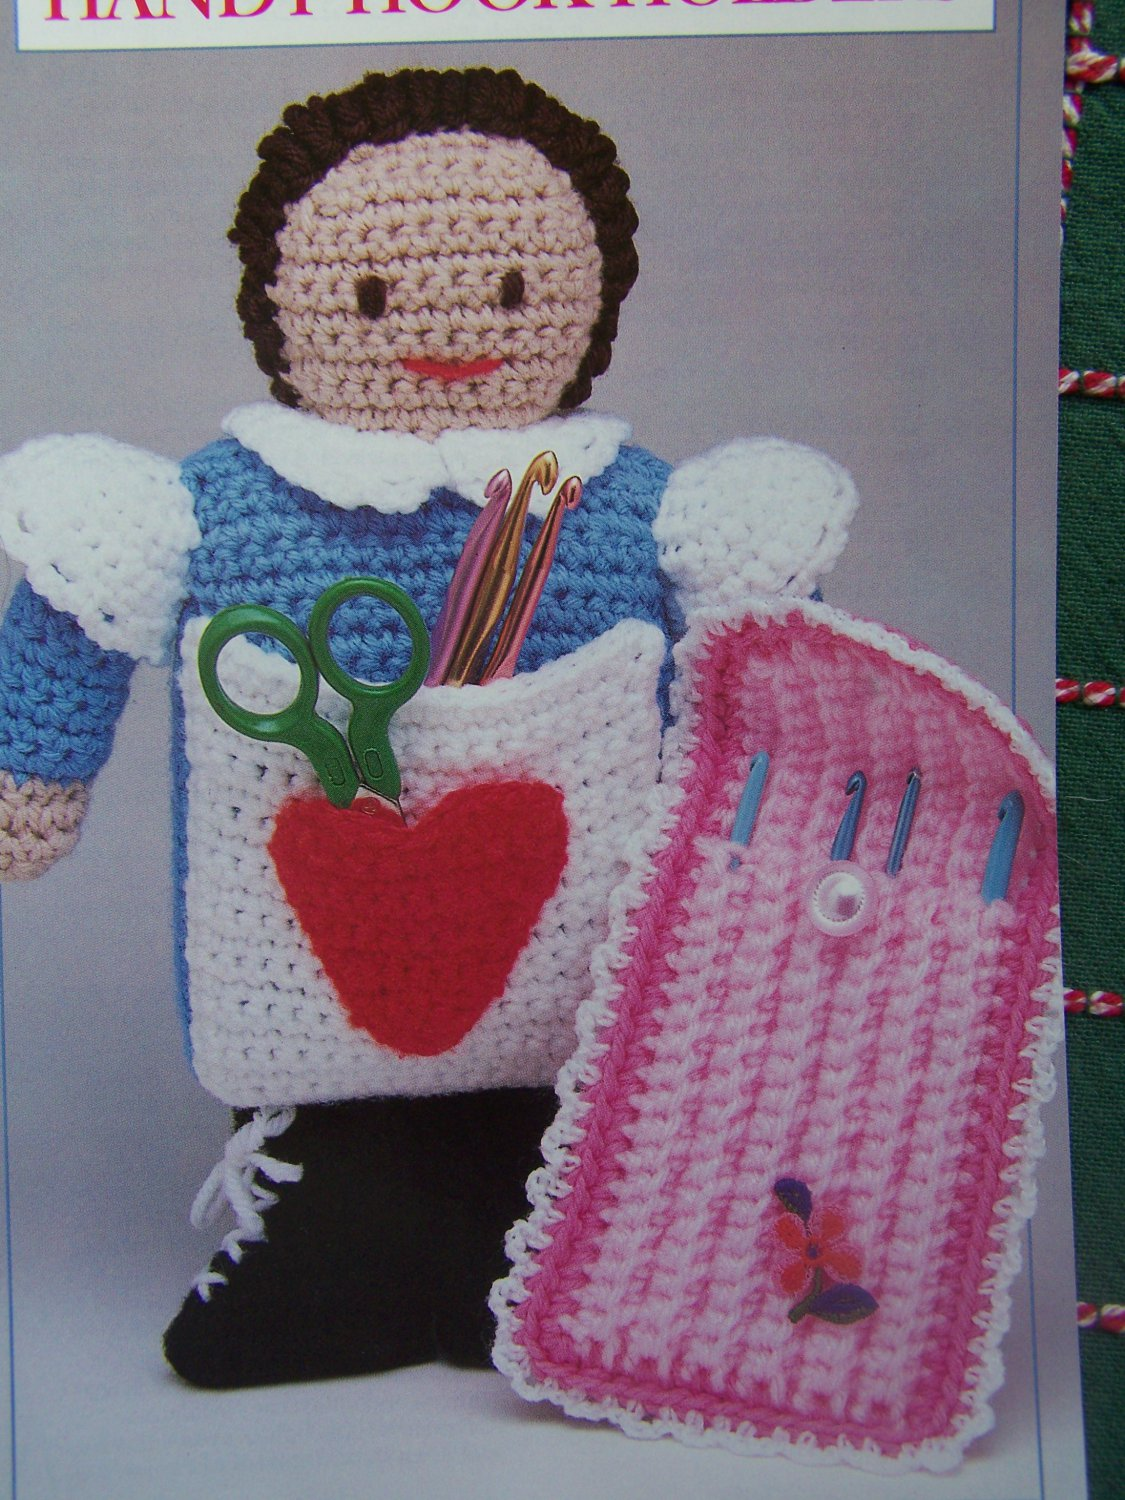 Annies Attic Crochet Patterns : Annies Attic Handy Crochet Hook Holders Patterns Doll and Travel Case